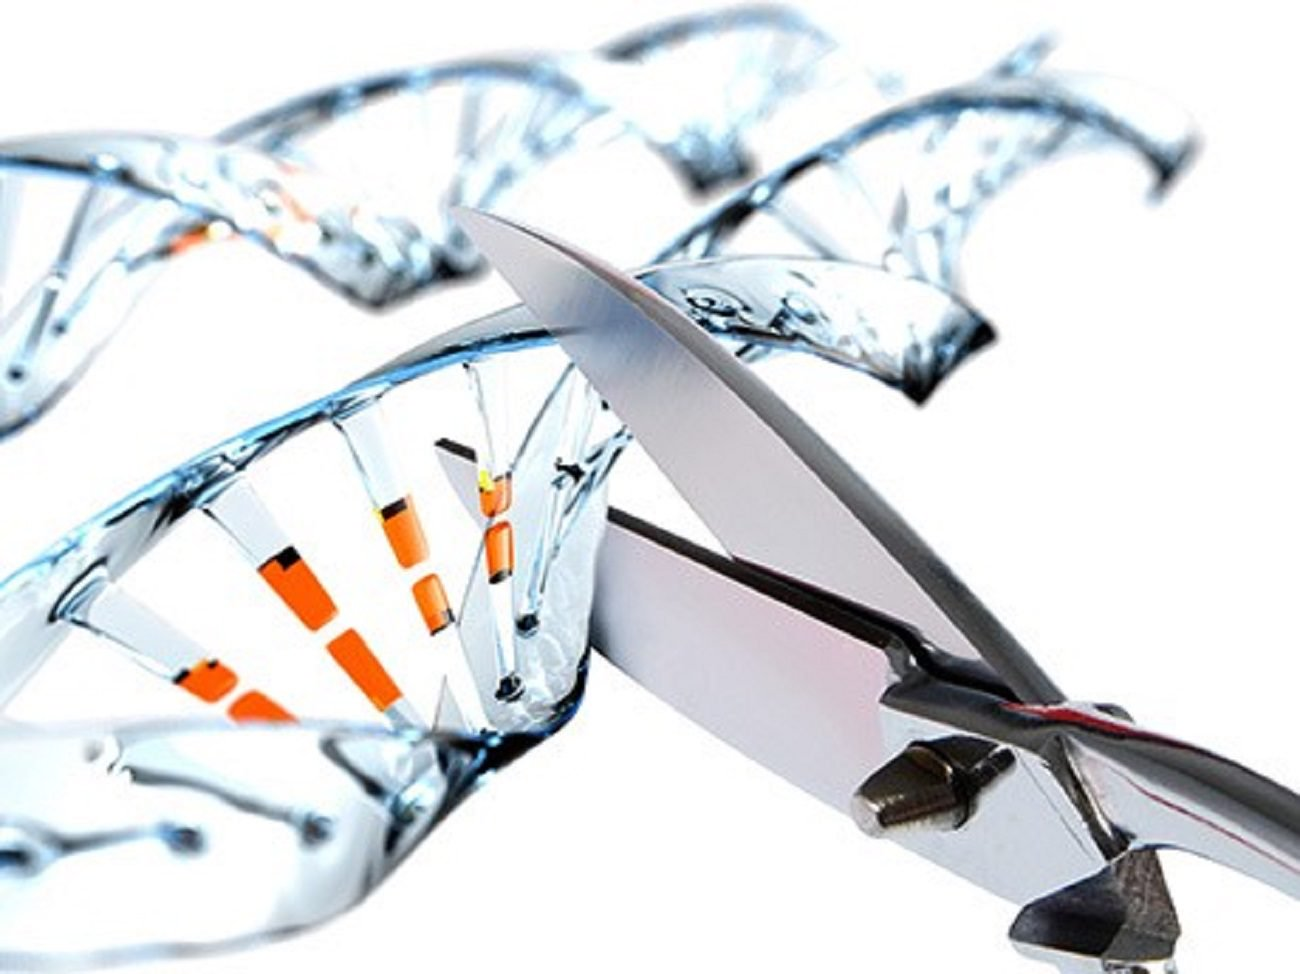 Scientists find unusual use of the editor CRISPR genome